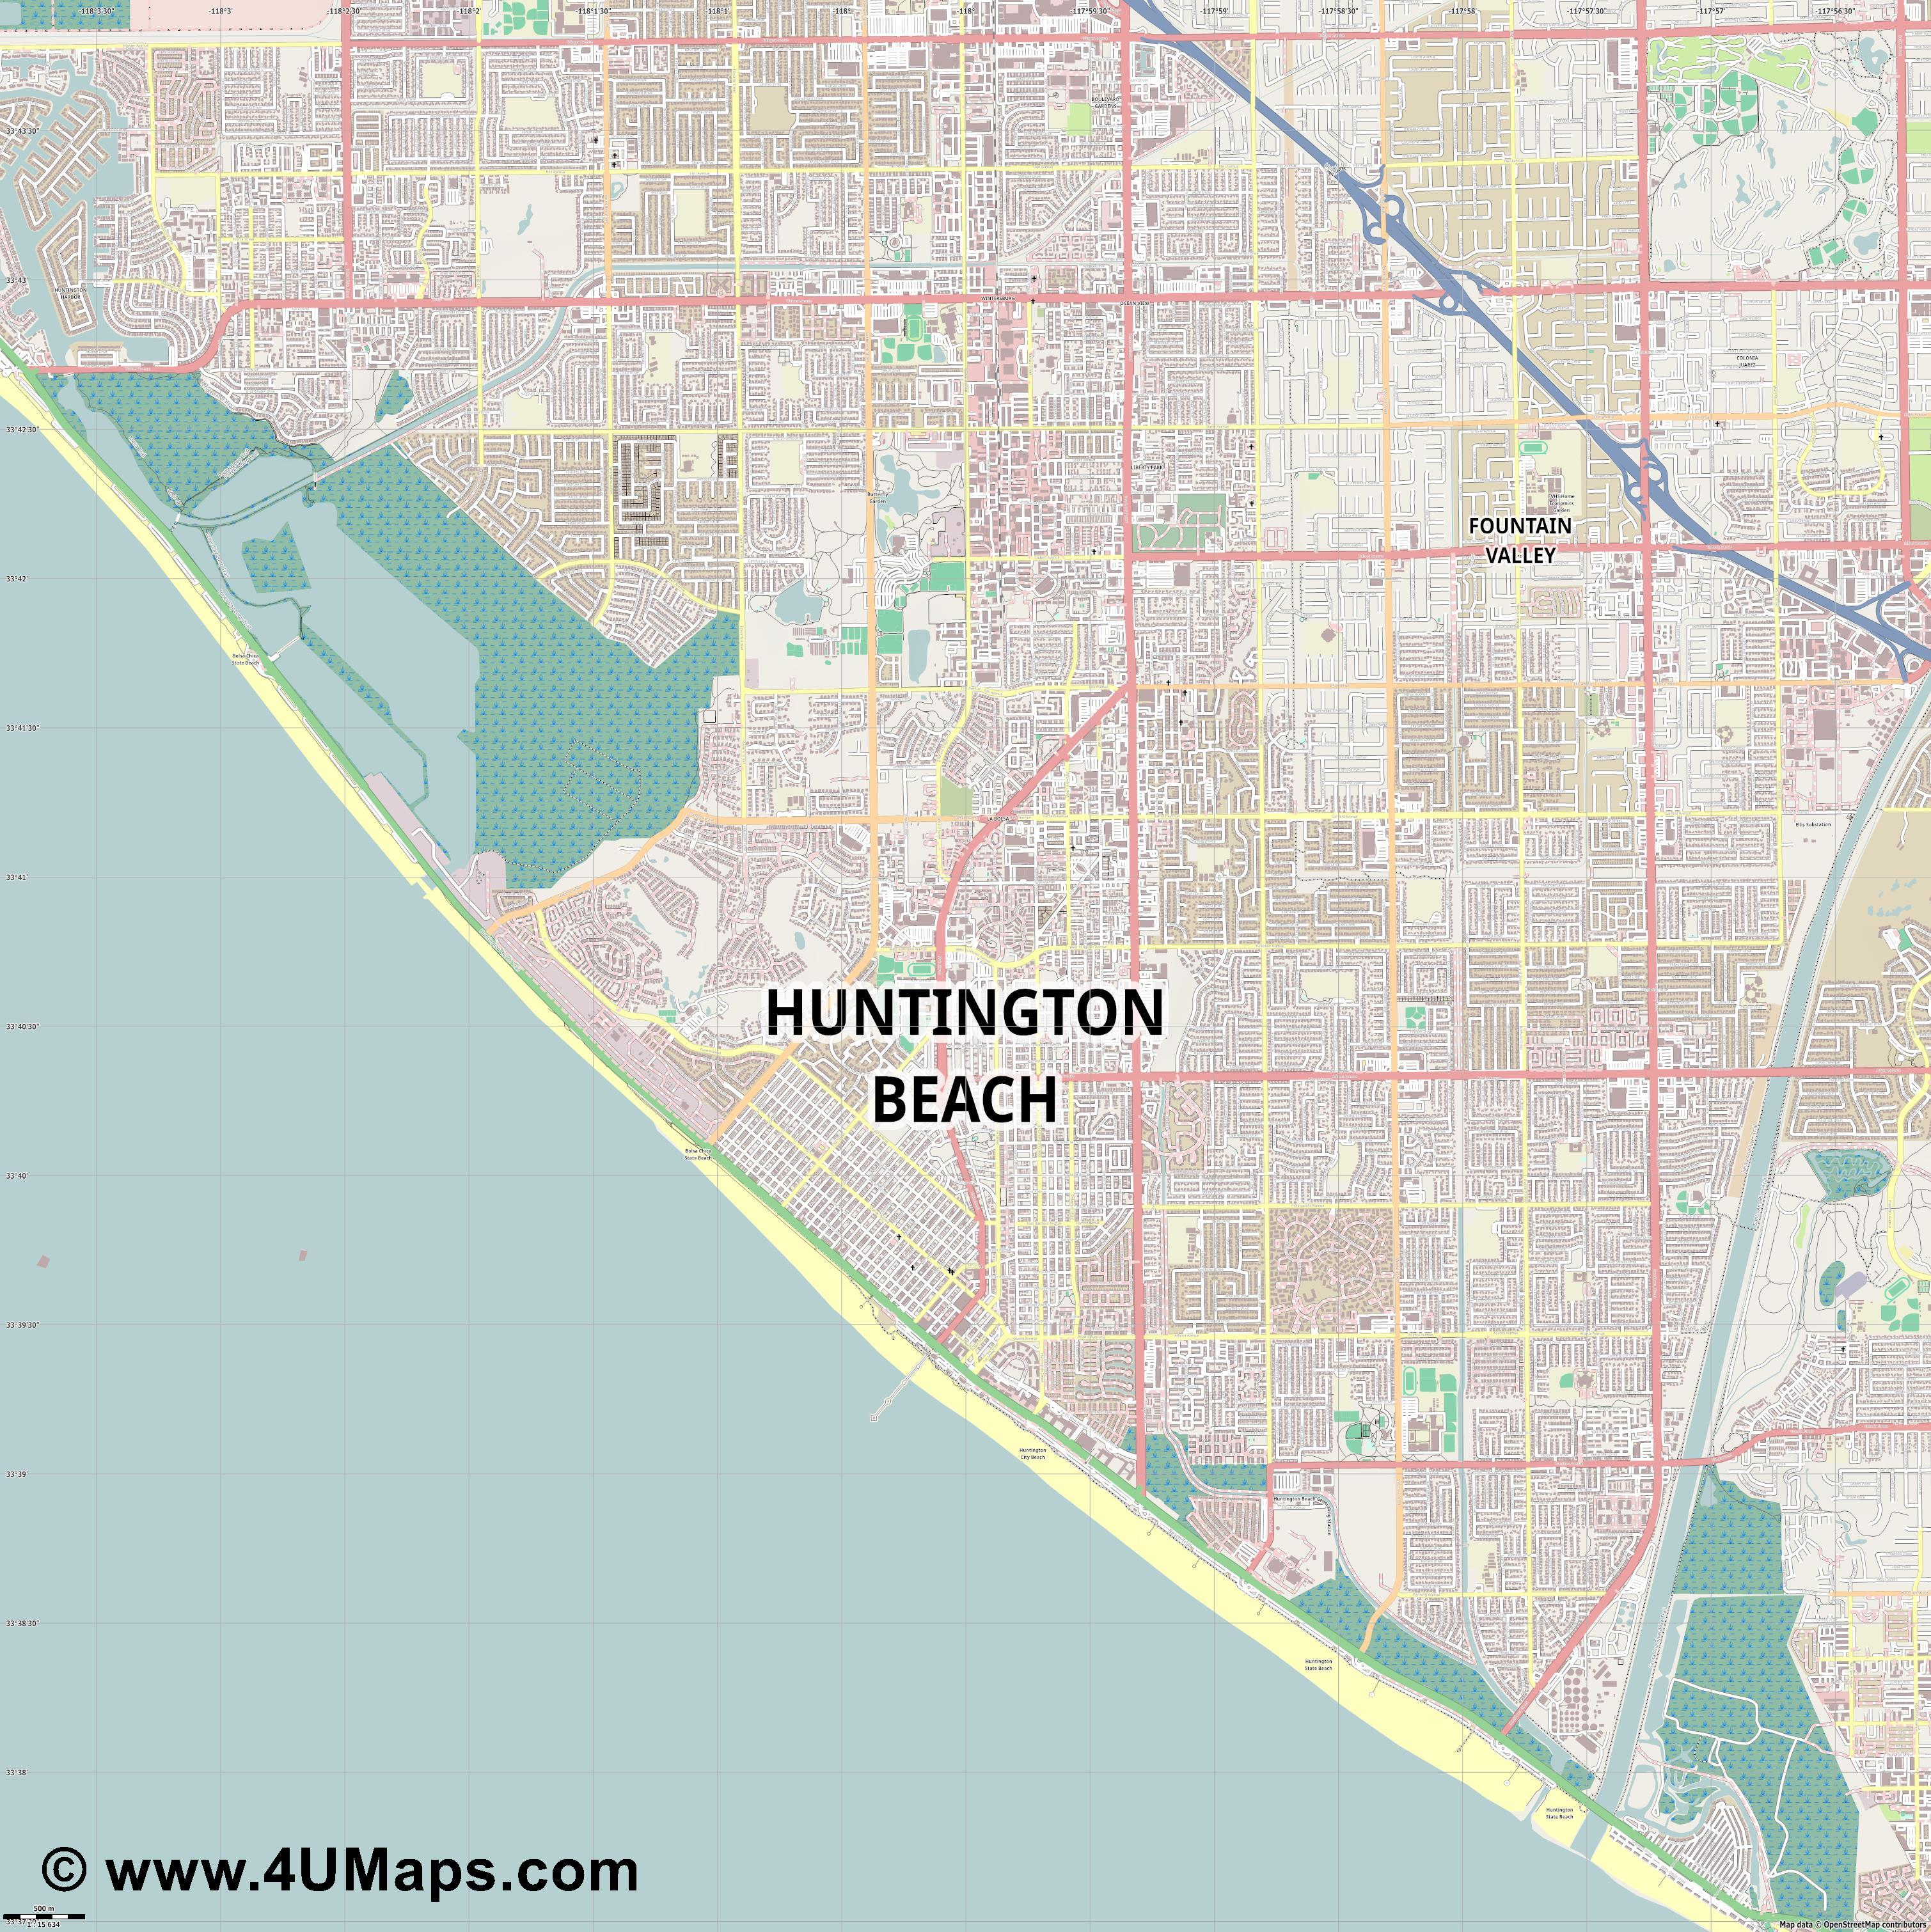 Huntington Beach  jpg ultra high detail preview vector city map